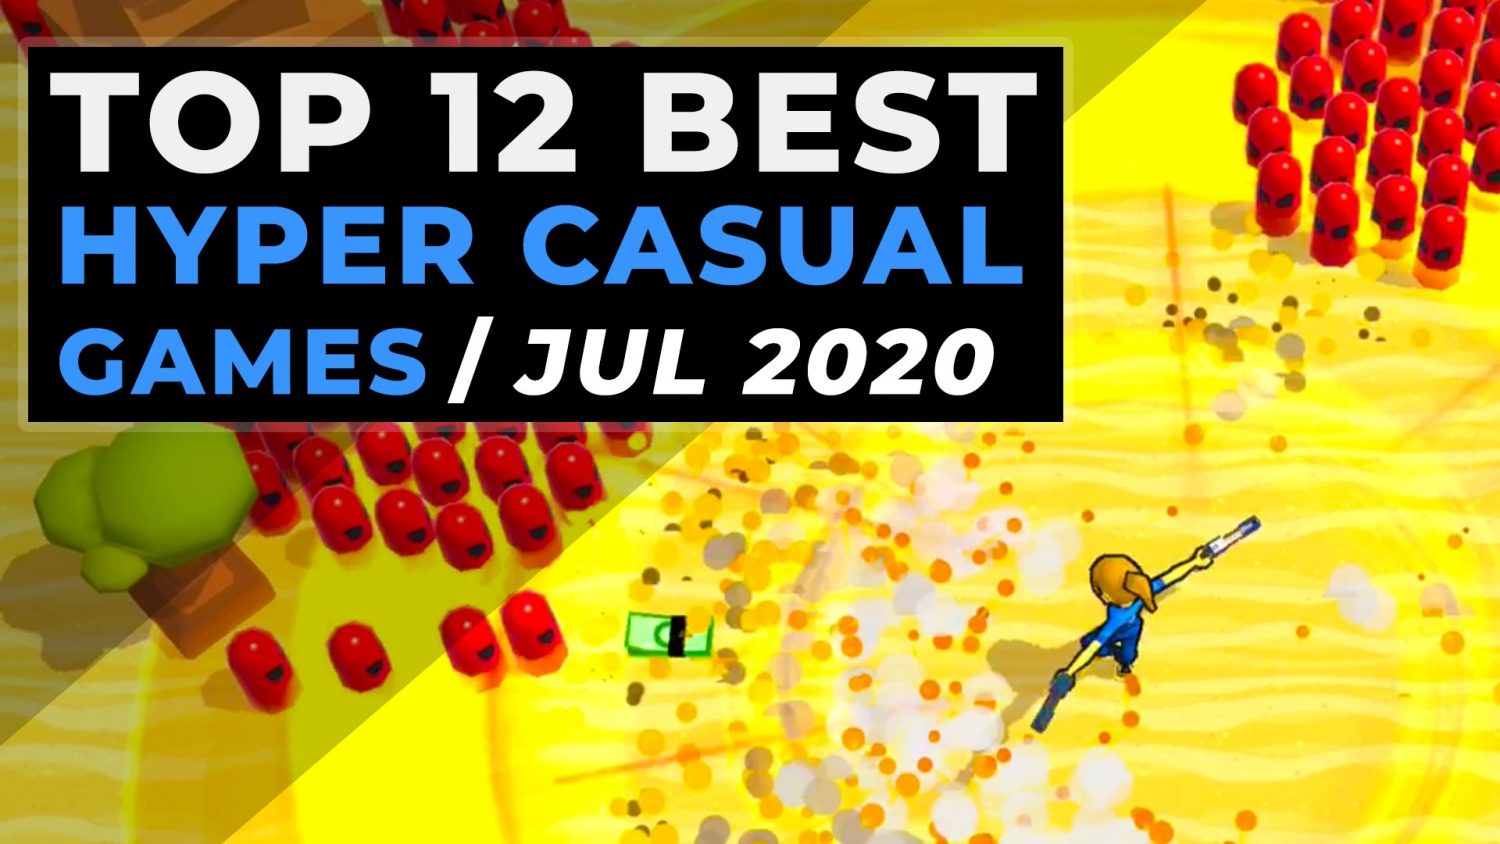 Top Hyper Casual Games July 2020